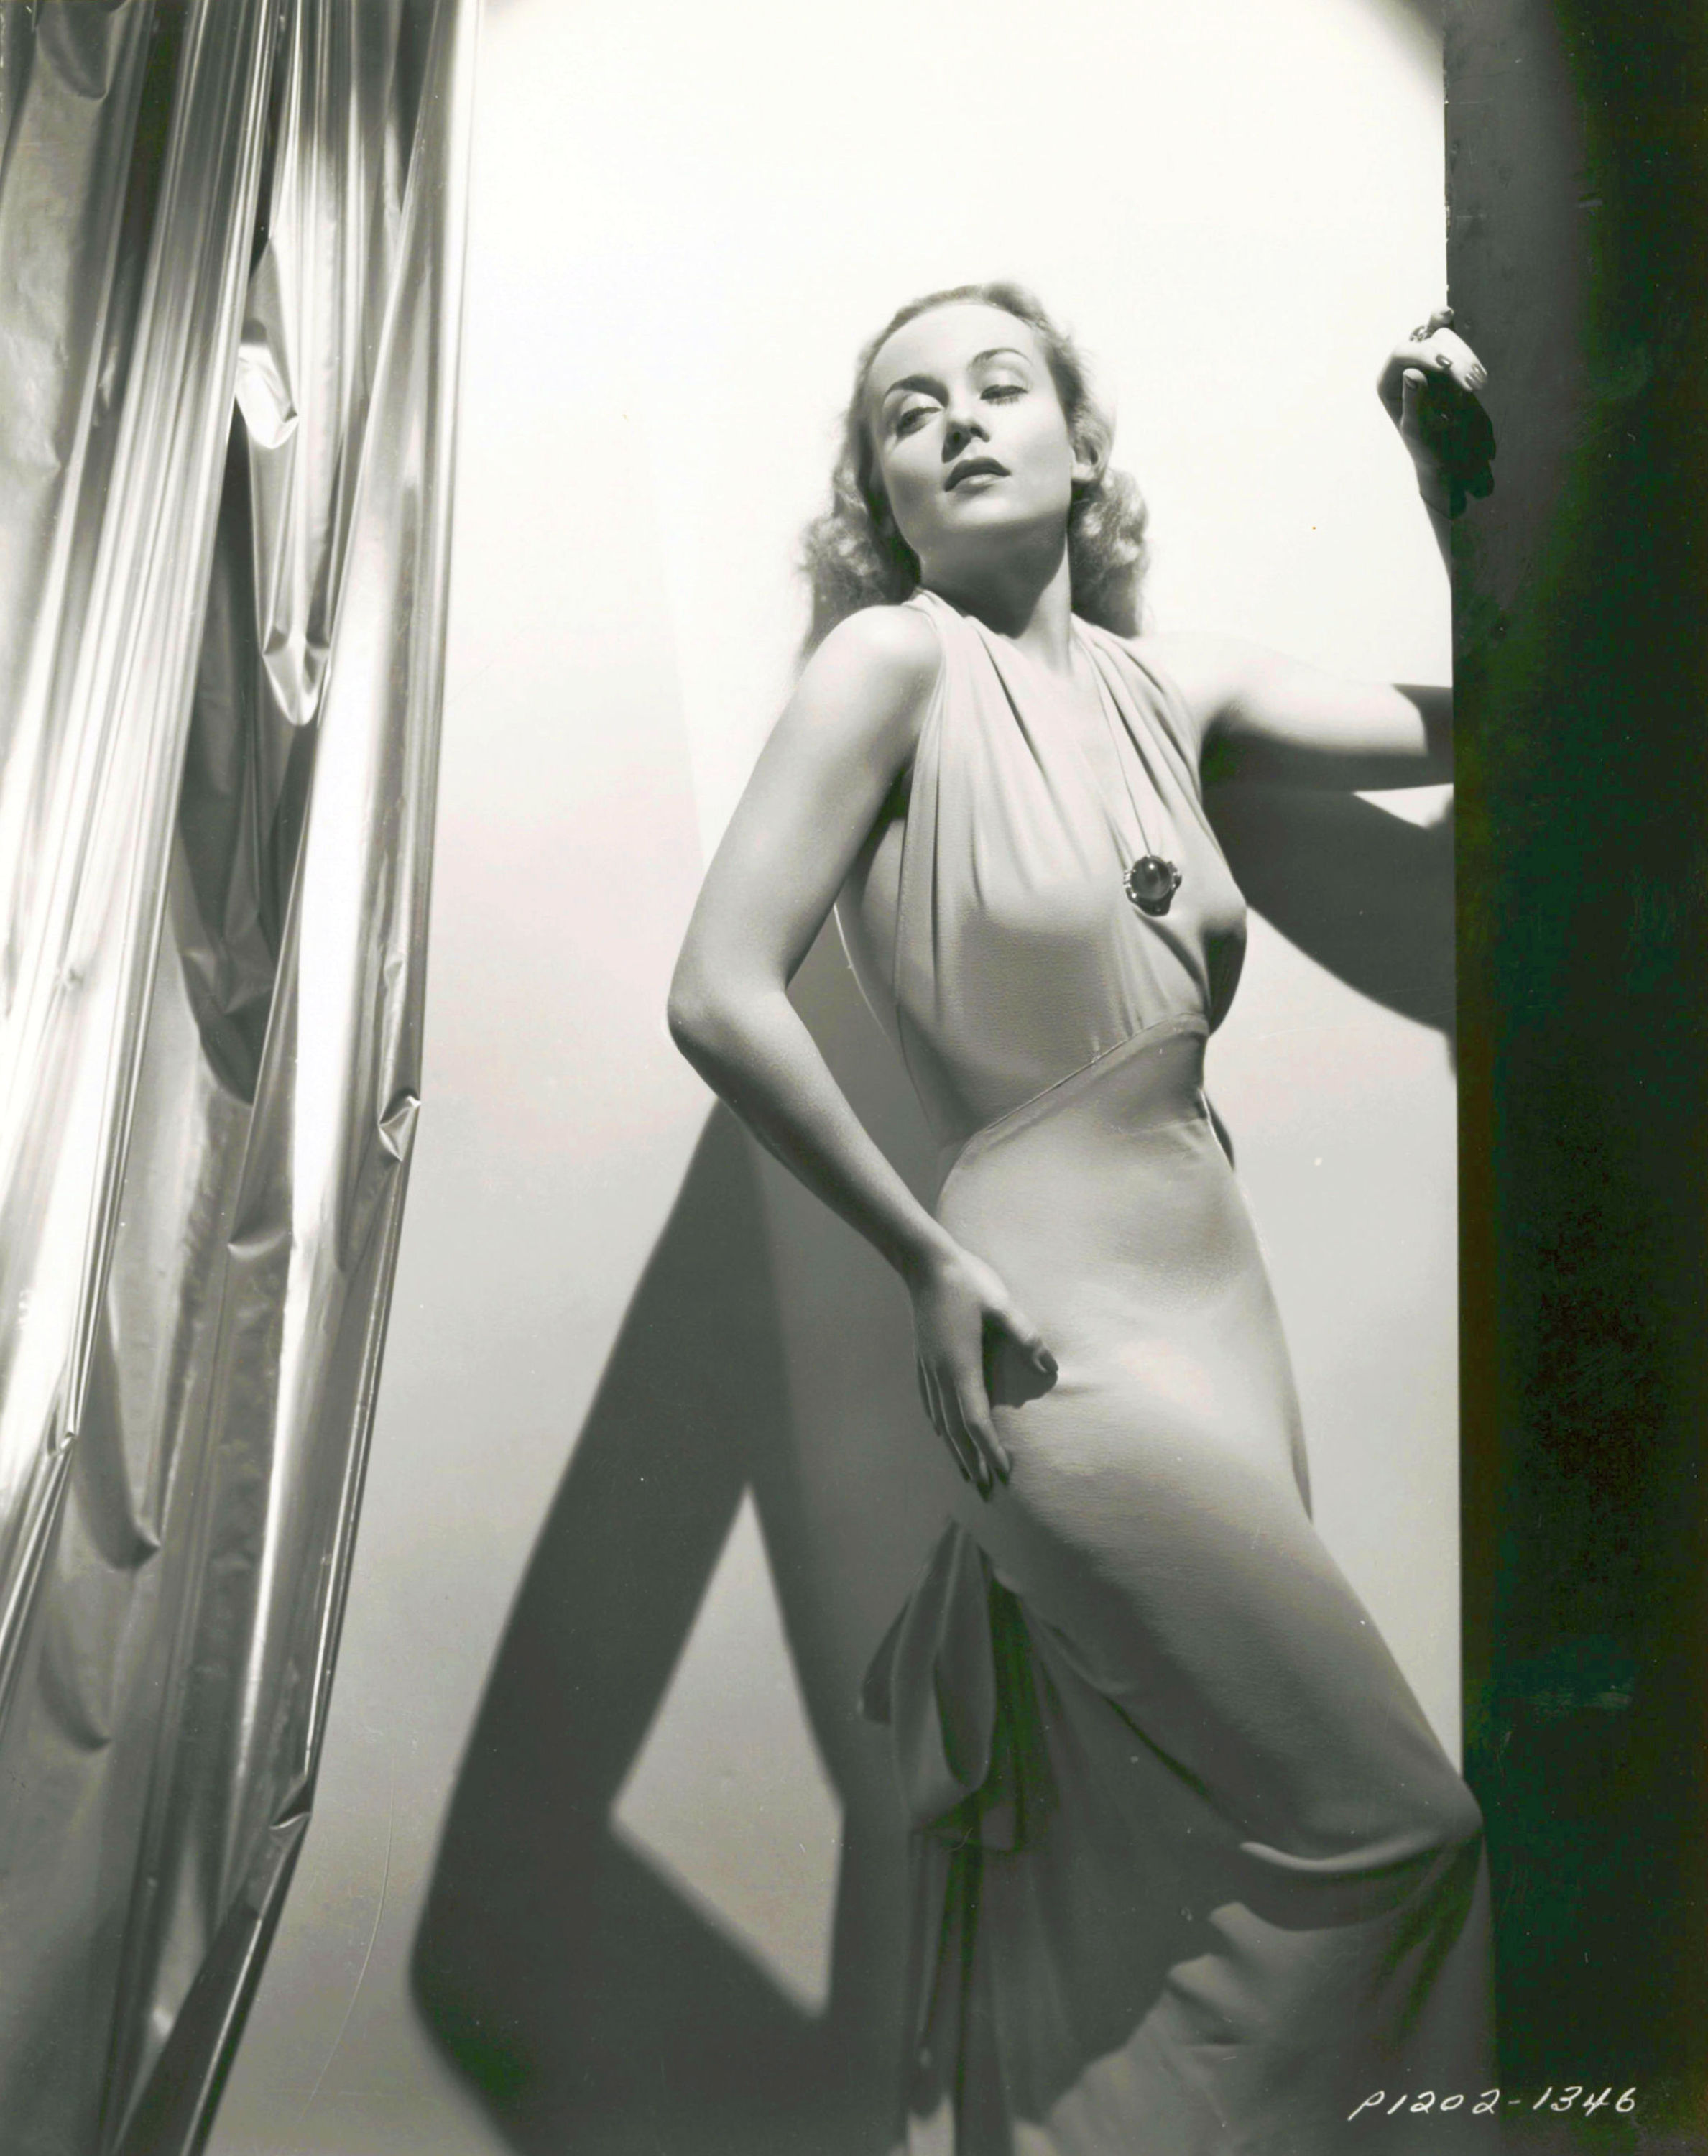 carole lombard p1202-1346a largest